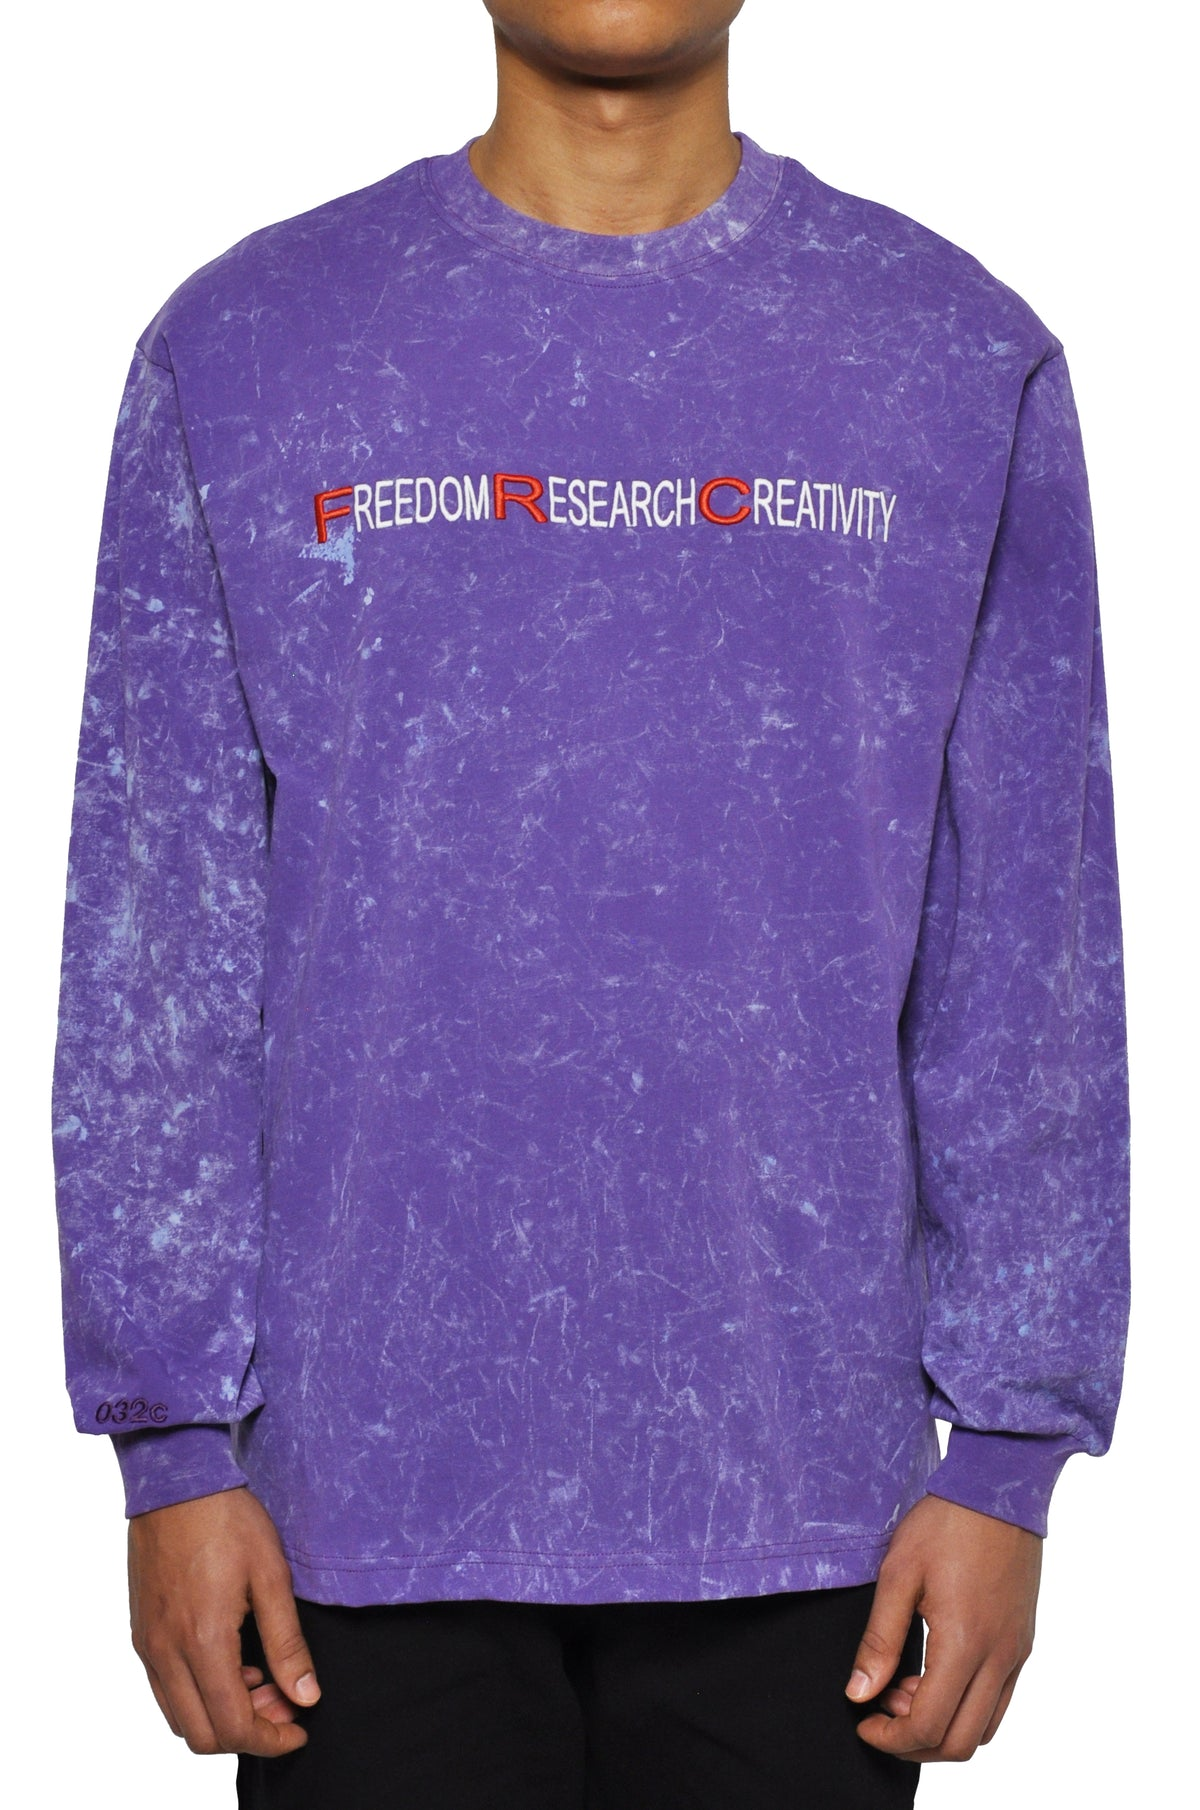 "032c LoveSexDreams ""Freed0m"" Longsleeve Acid Wash Purple - 032c"